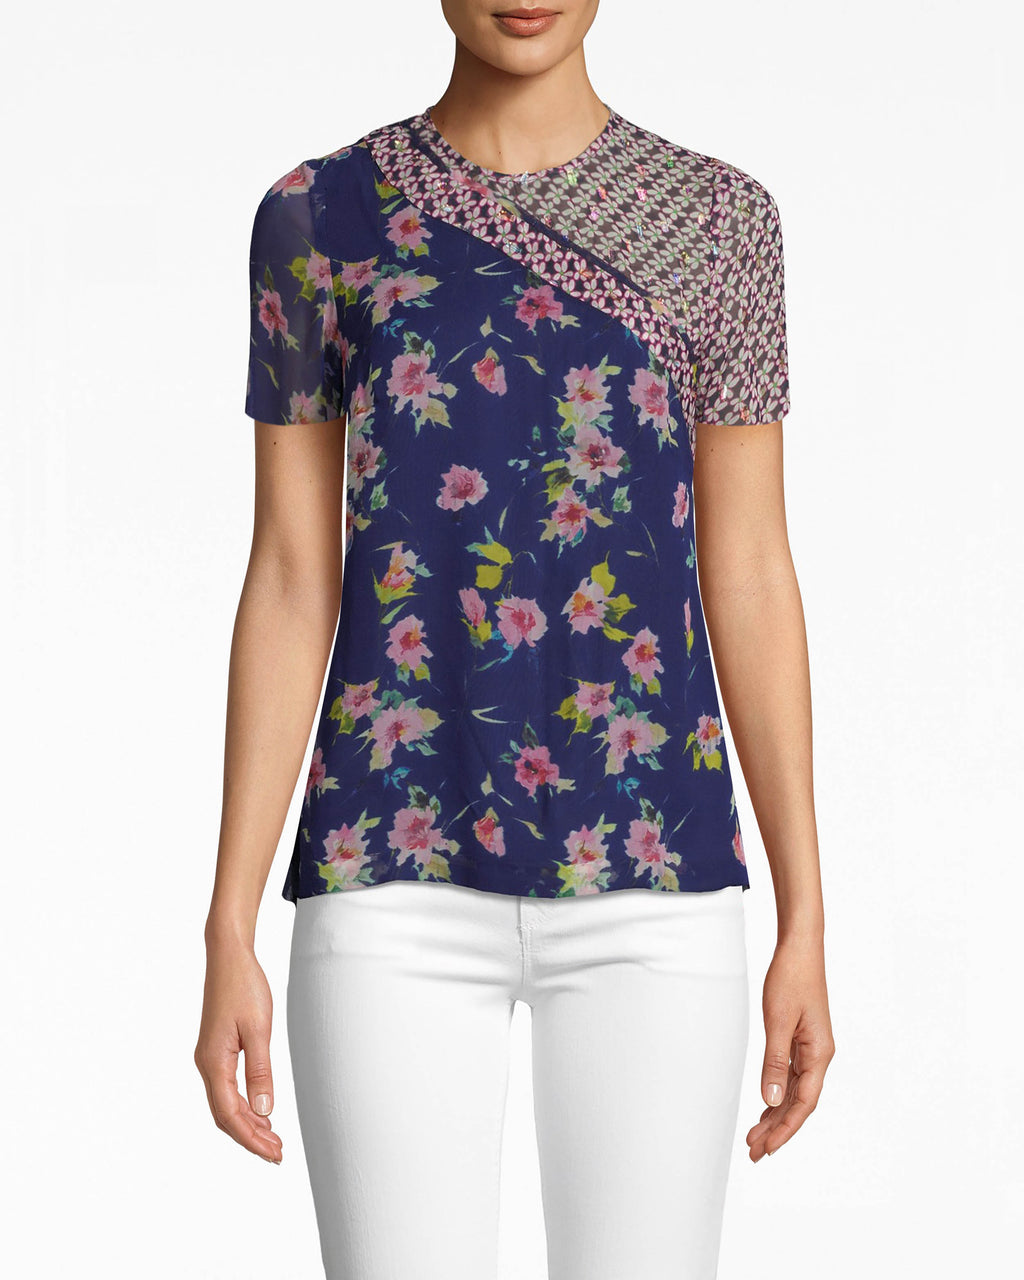 BE10401 - COSMO FLORA T-SHIRT - tops - blouses - BORING T-SHIRTS BE GONE. THIS FLORAL T-SHIRT PAIRSWELL WITH JUST ABOUT EVERYTHING AND FEATURES A BITOF SHIMMER FOR ADDED GLAMOUR.